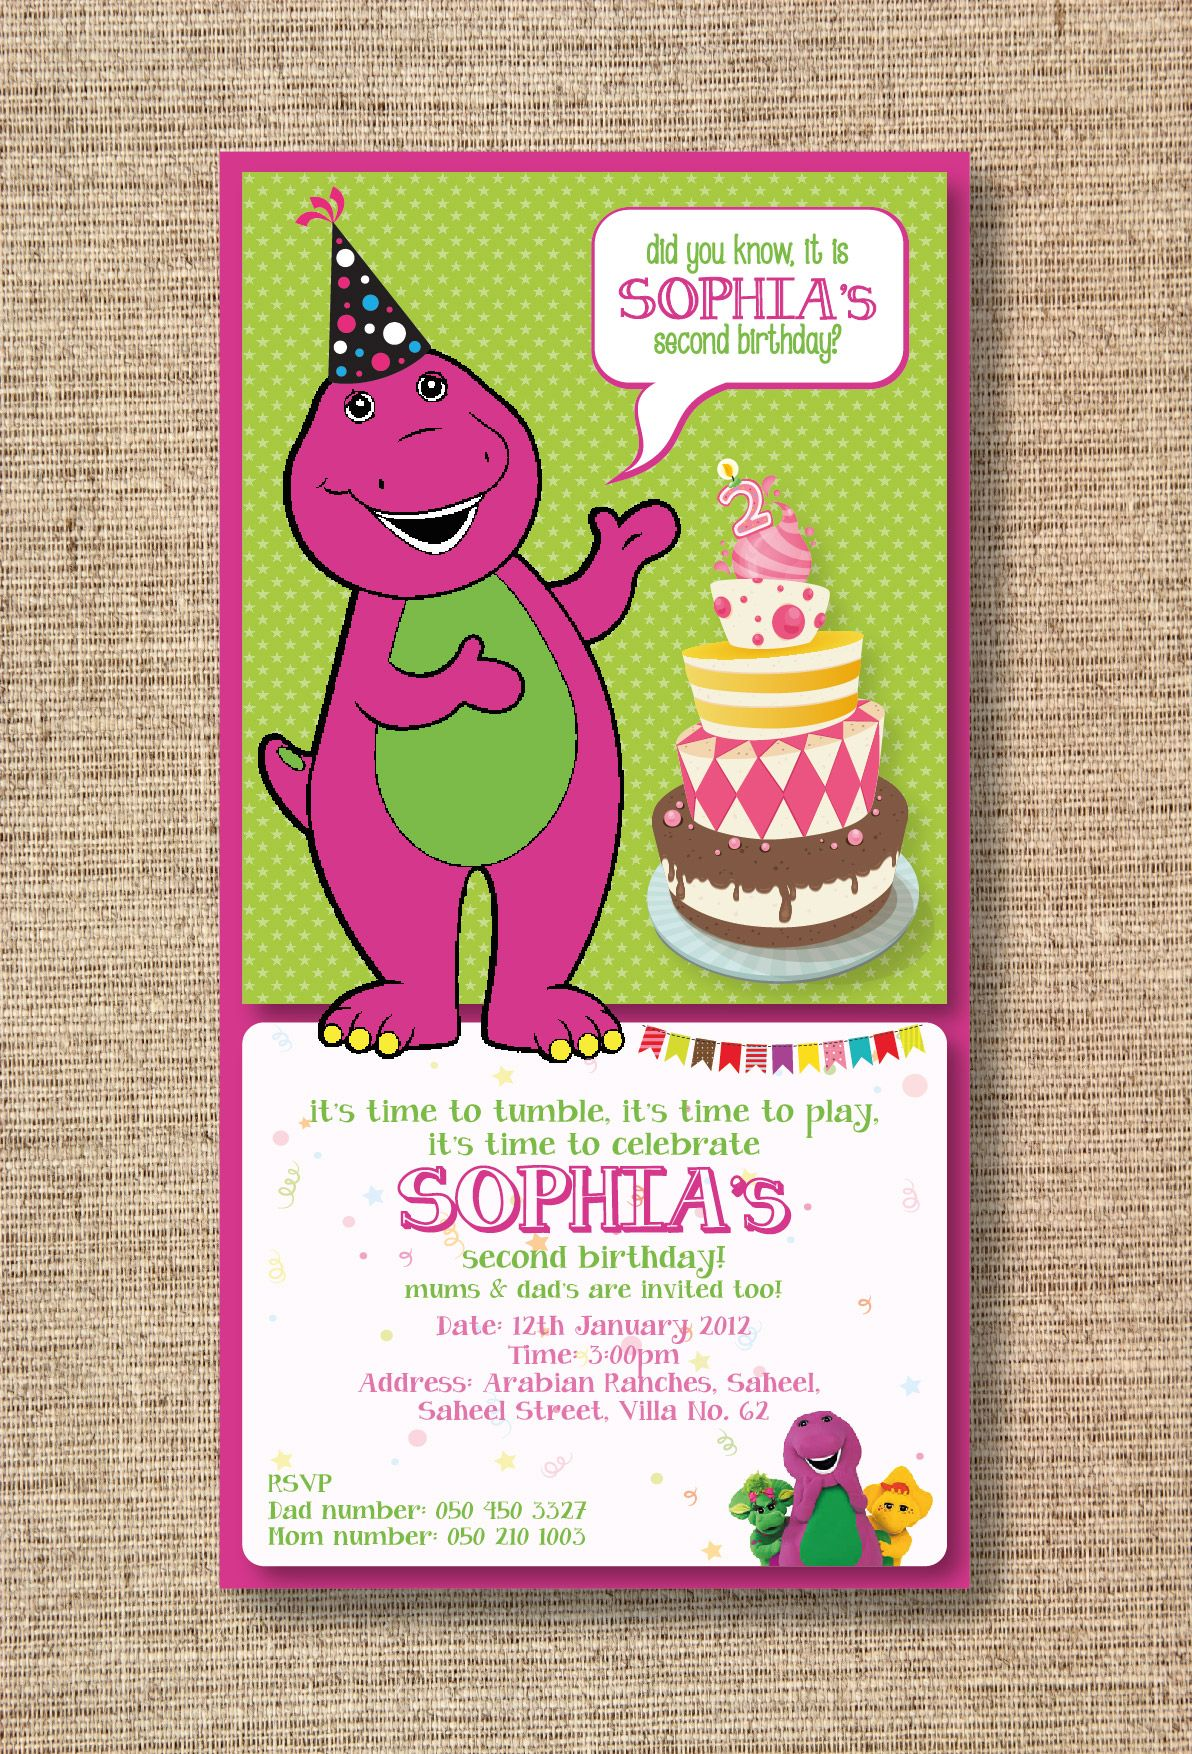 Barney Theme E Invitation Purple Green Birthday Birthdaytheme Creativeboxdubai Dubaikids Kid Dubai